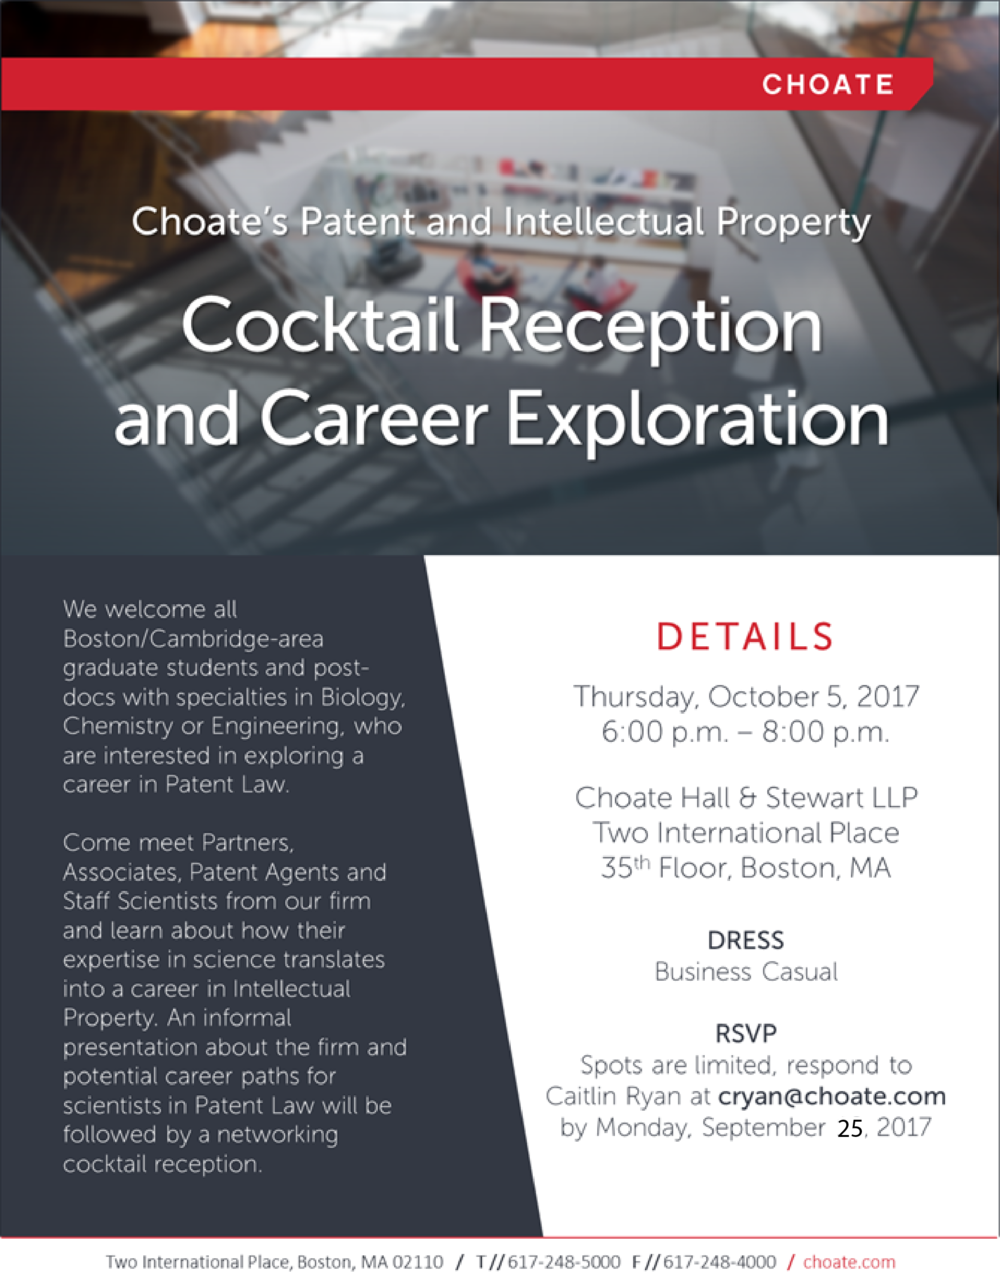 Choate networking event 10-5-17.png